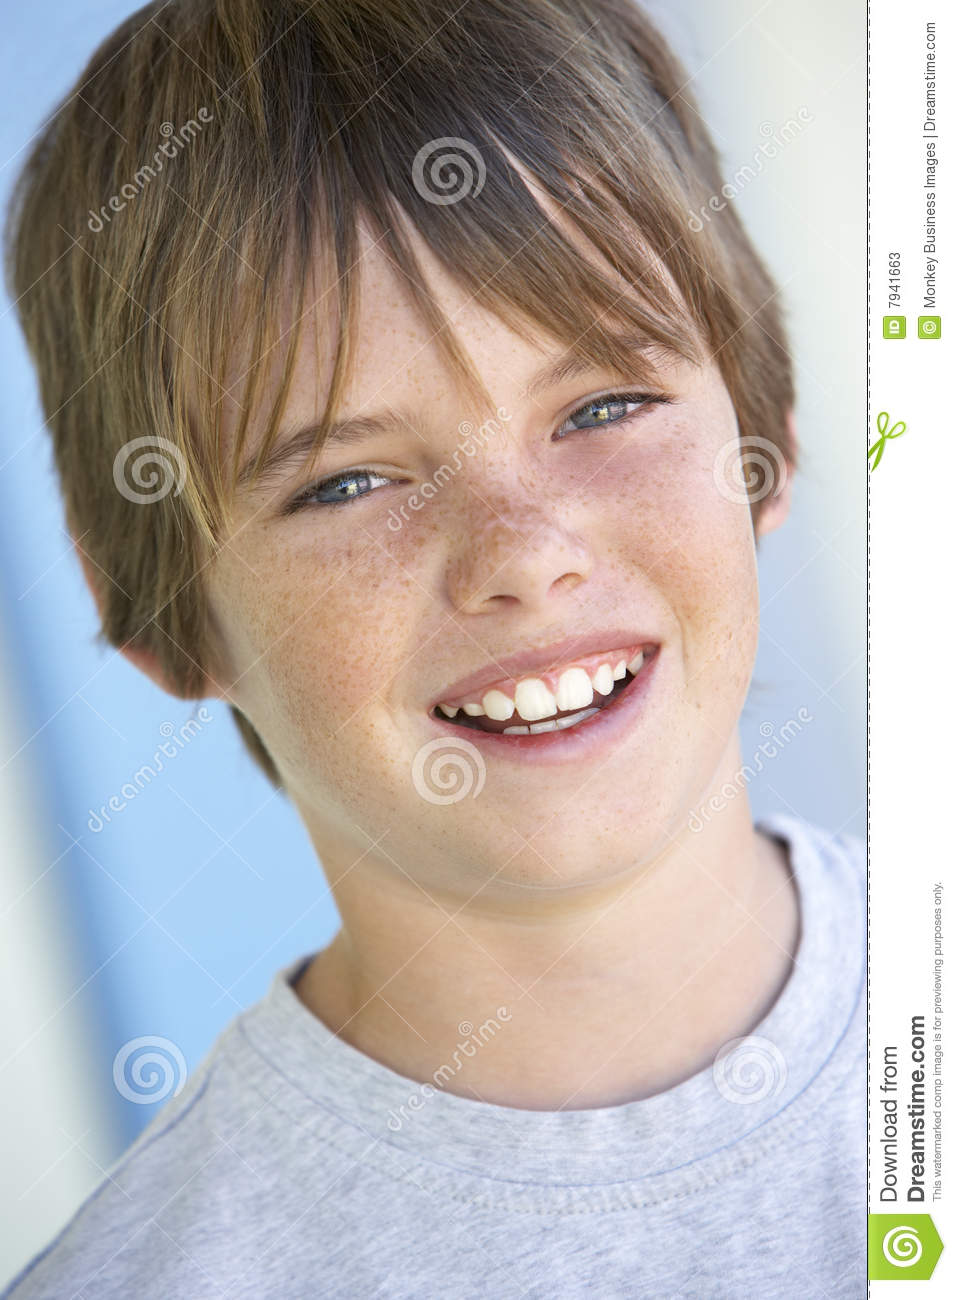 teenboy Portrait Of Pre Teen Boy Smiling Stock Photos - Image: 7941663